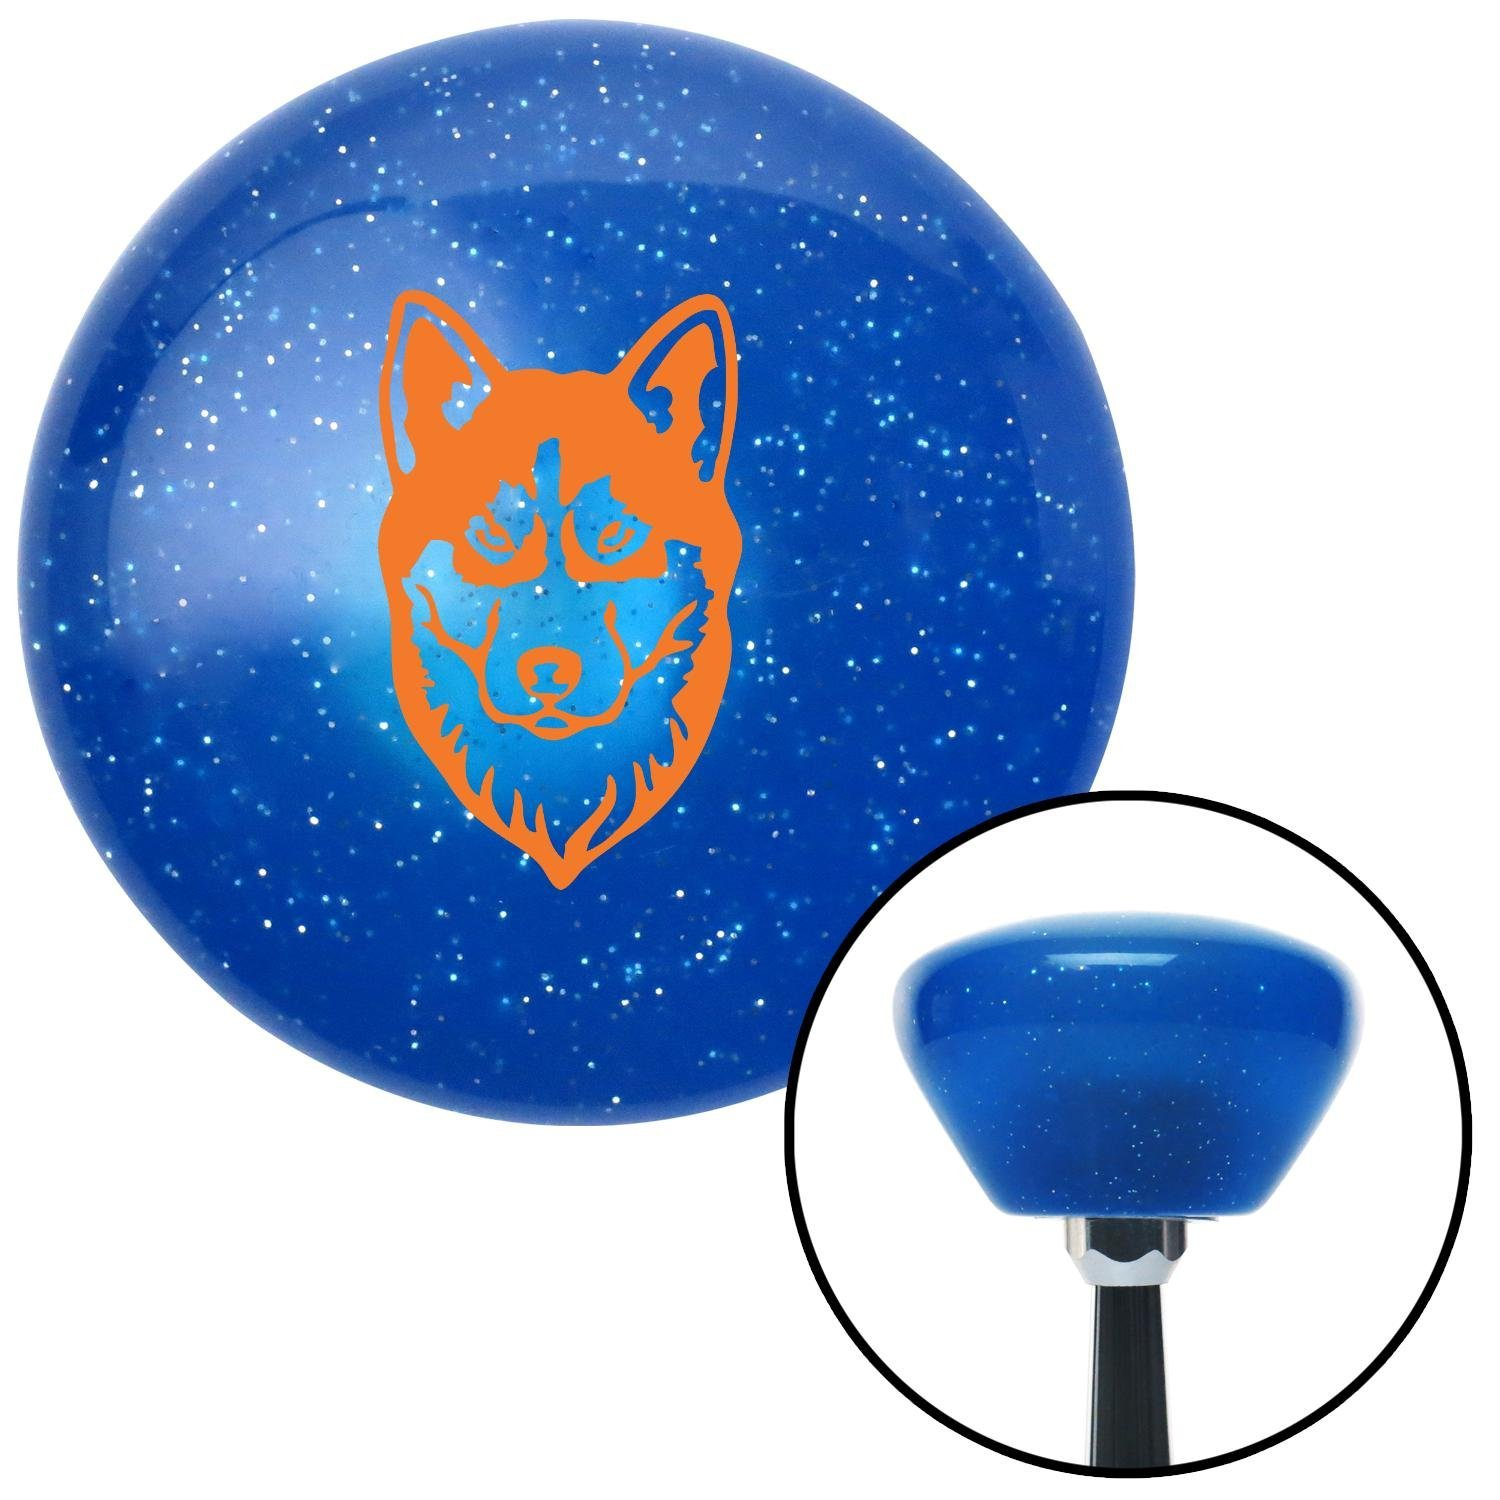 American Shifter 190952 Blue Retro Metal Flake Shift Knob with M16 x 1.5 Insert Orange Husky